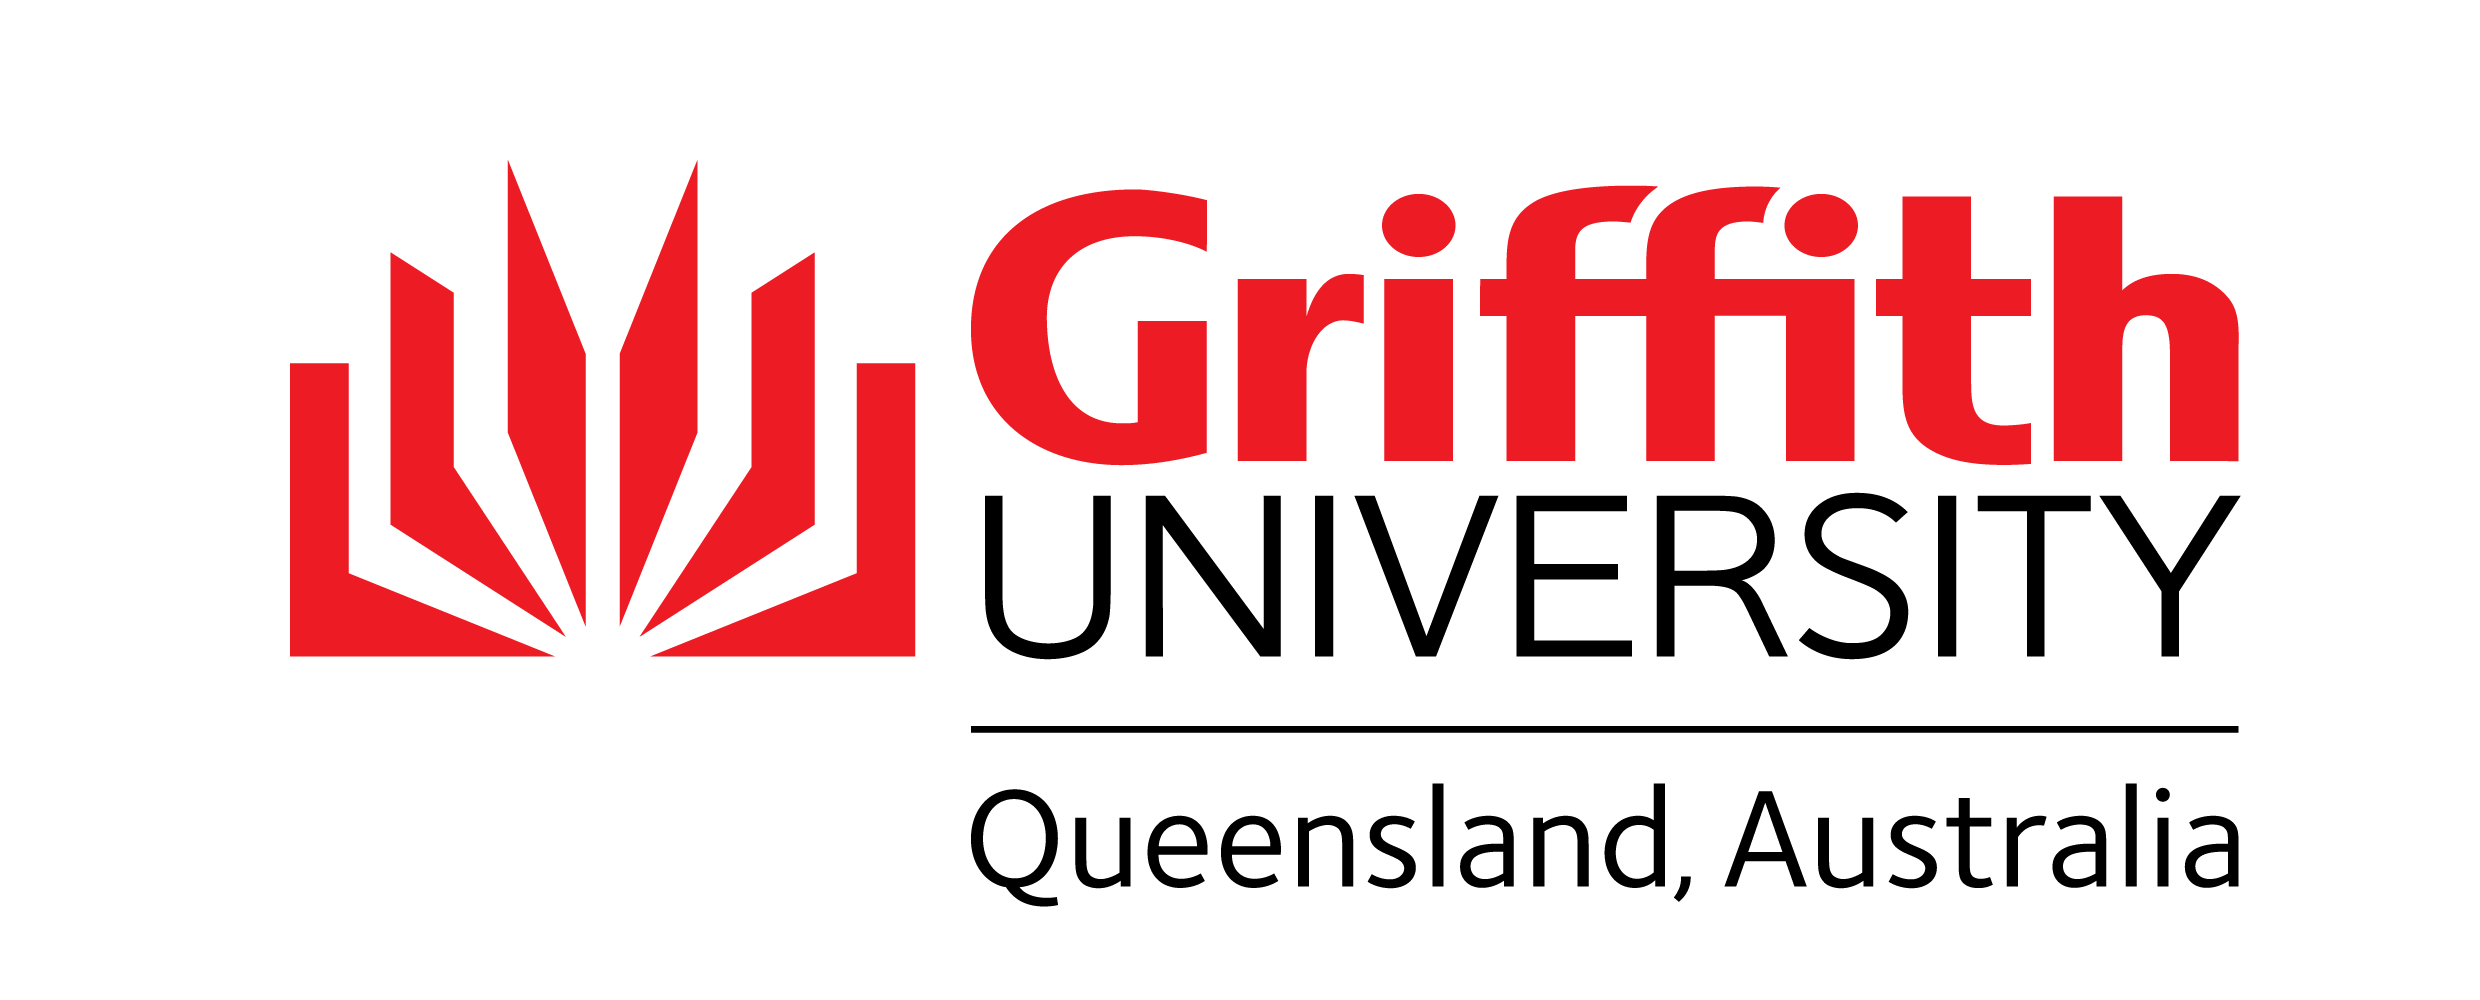 https://www.griffith.edu.au/